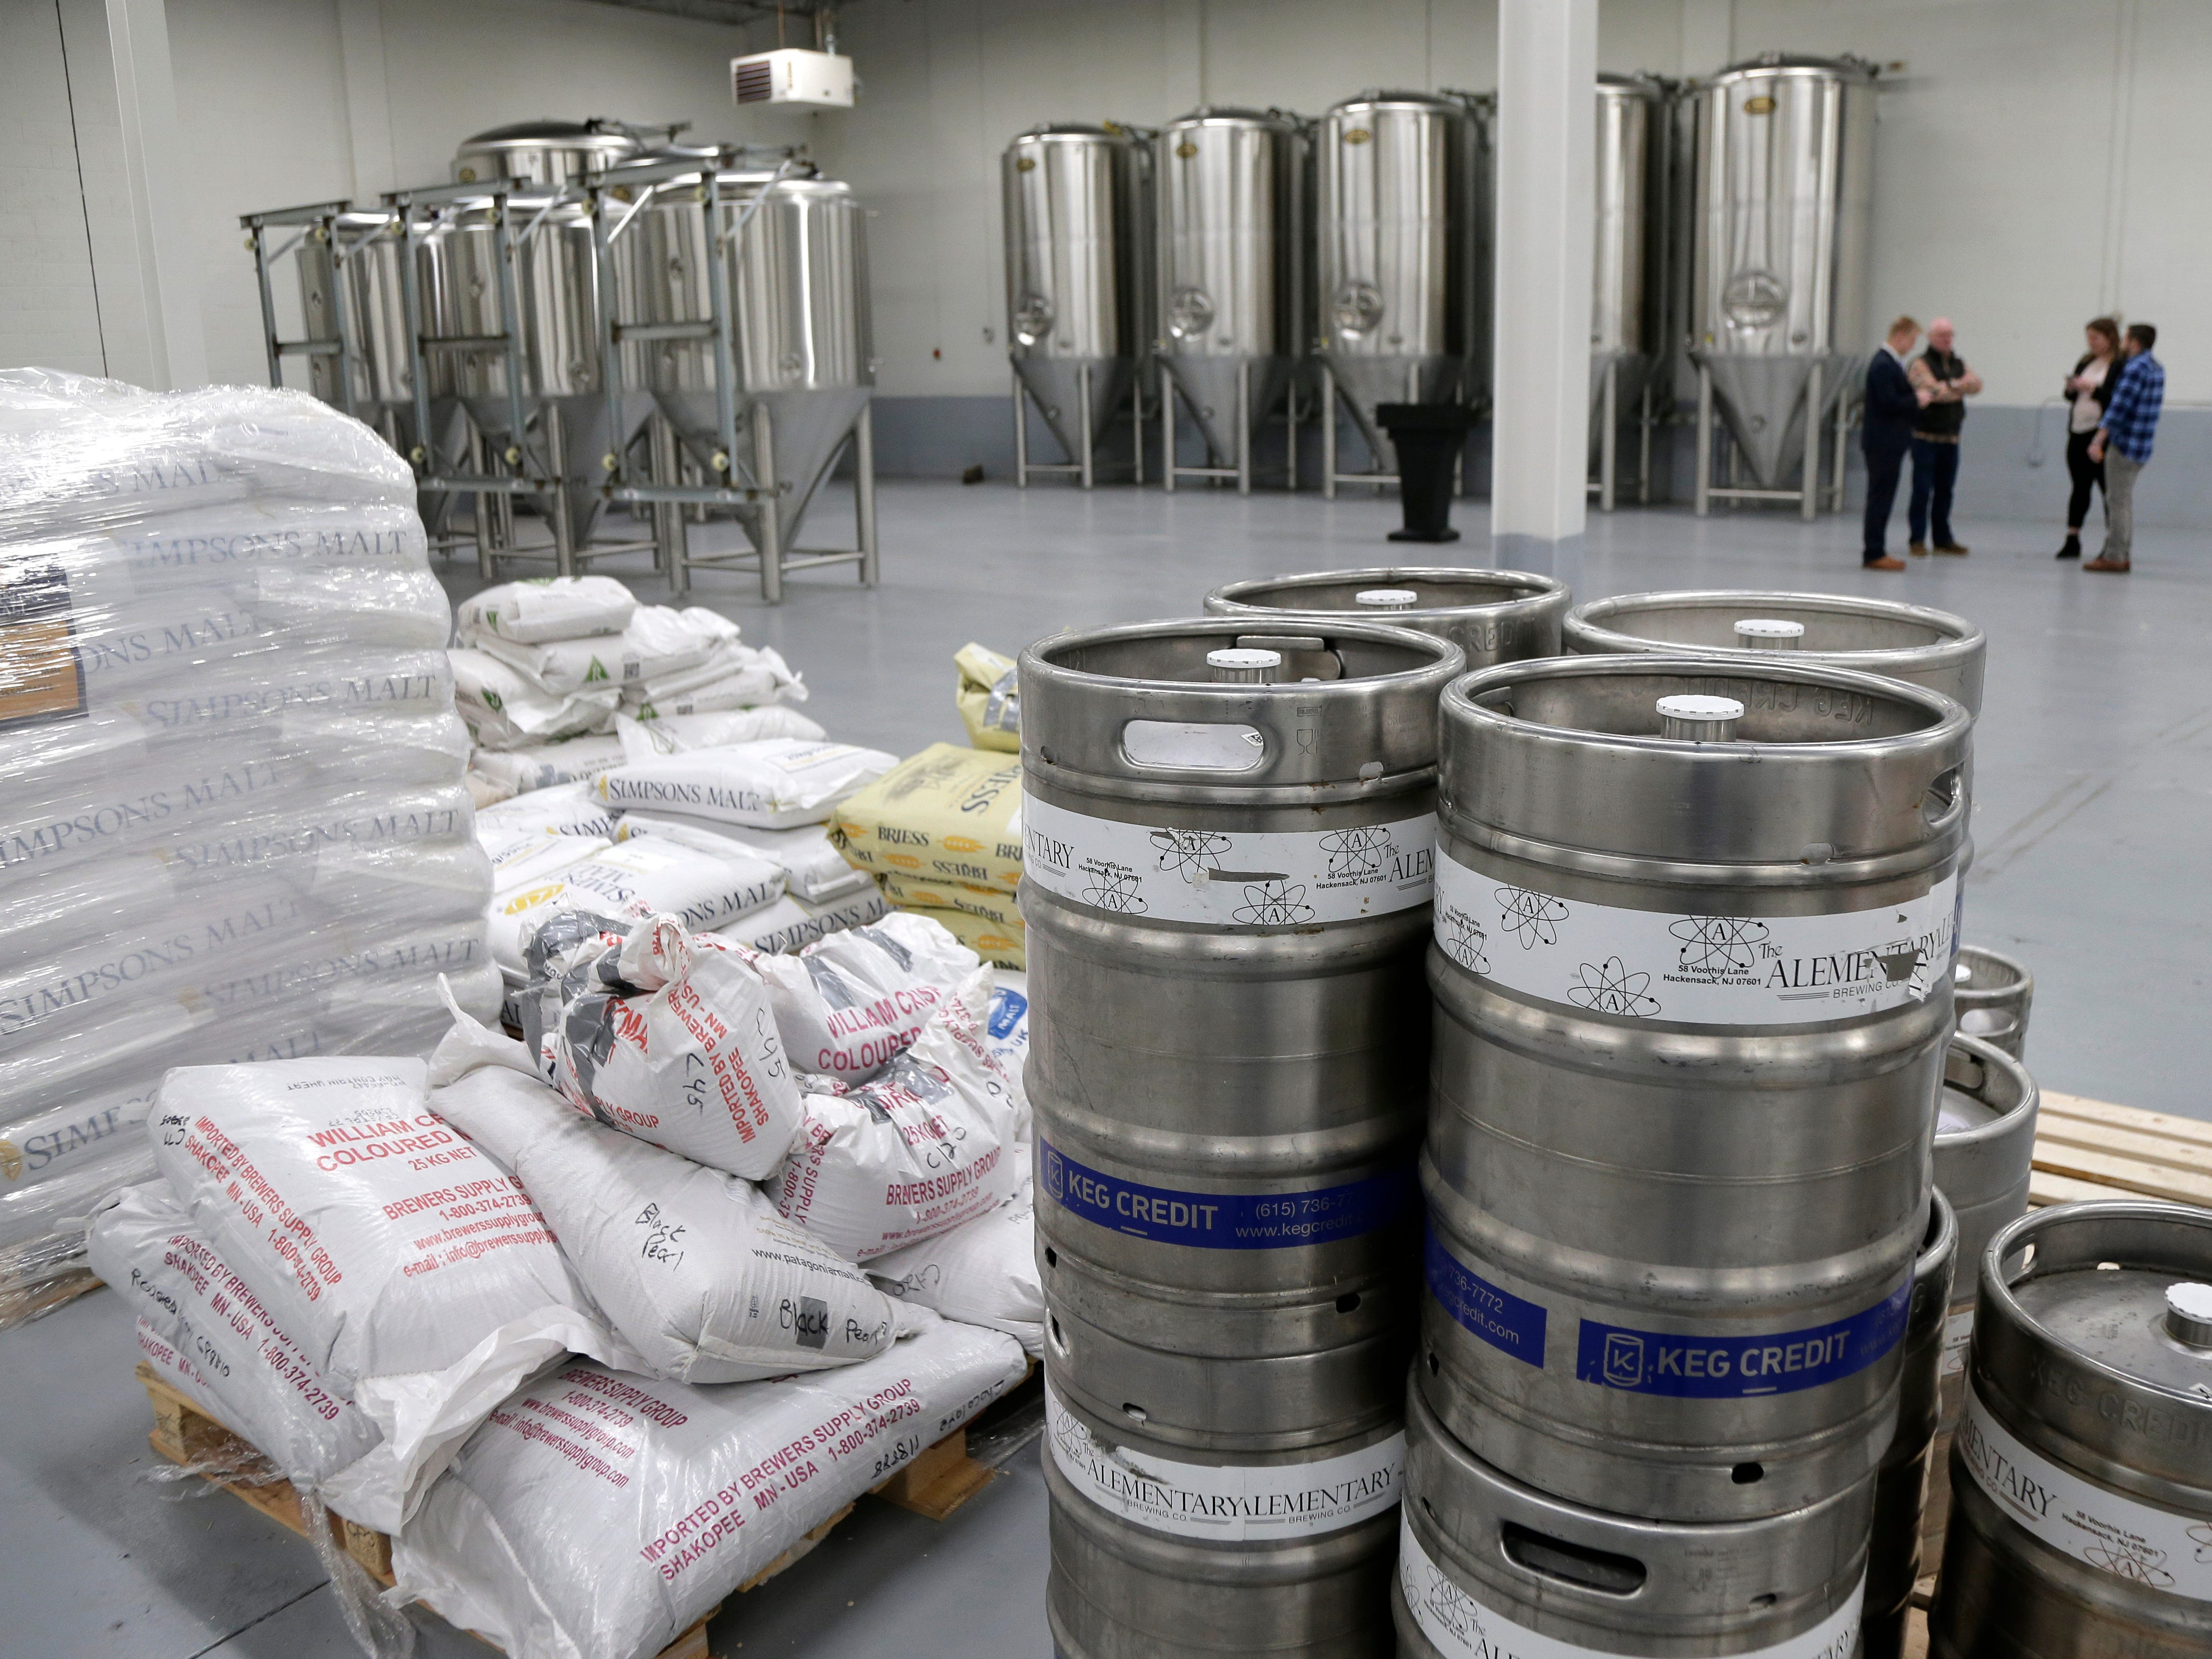 New brewing equipment, rear, sits idle in a warehouse used by the Alementary Brewing Co. in Hackensack, N.J., Jan. 7, 2019. The owners recently invested in one million dollars worth of new equipment and a new 13,000 sq ft warehouse which would increase their capacity five times, but due to the government shutdown, they have been unable to get the required licenses from the Alcohol and Tobacco Tax and Trade Bureau.